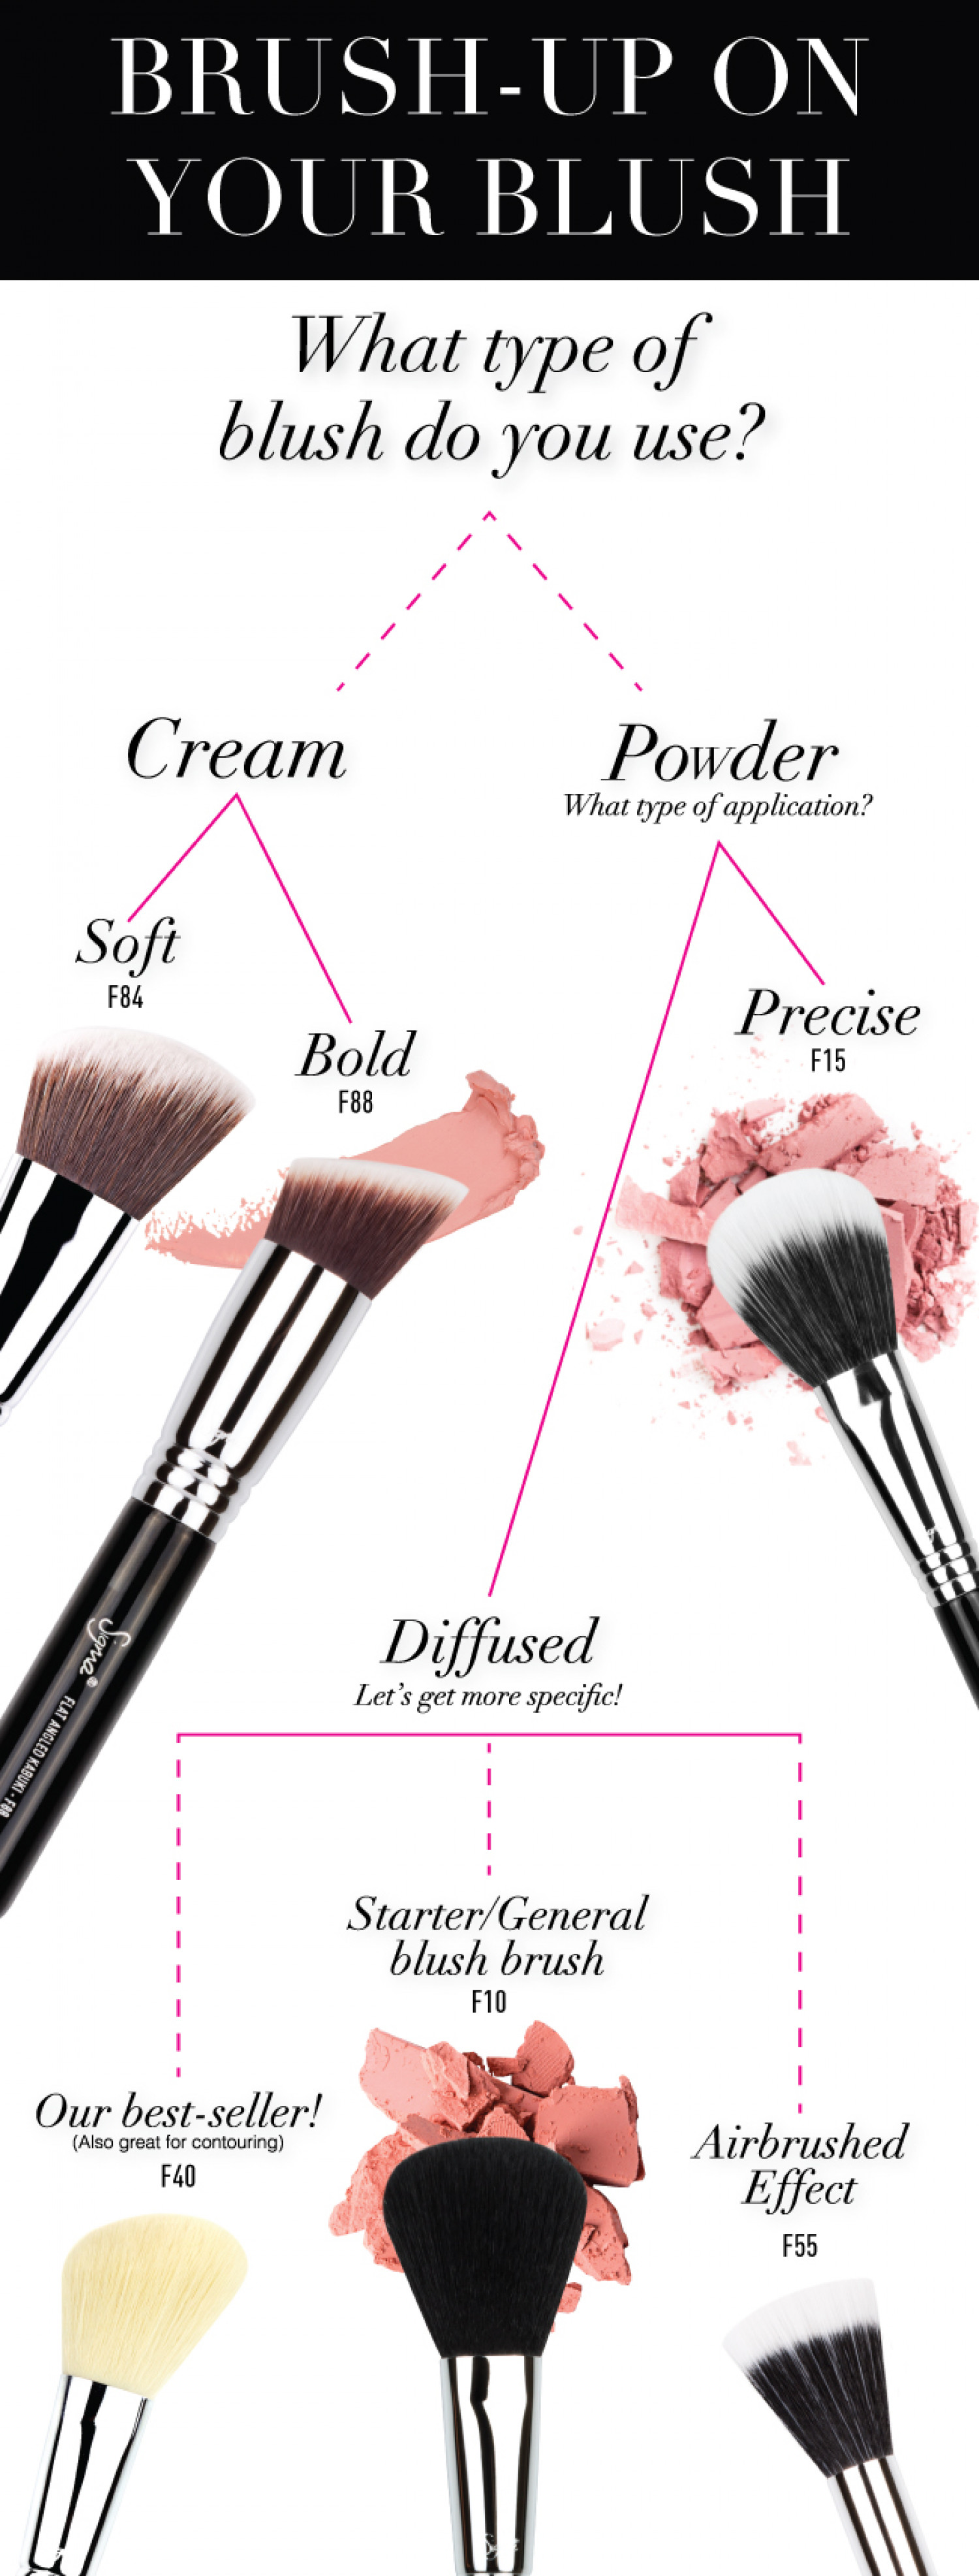 Brush-Up on Your Blush! Infographic